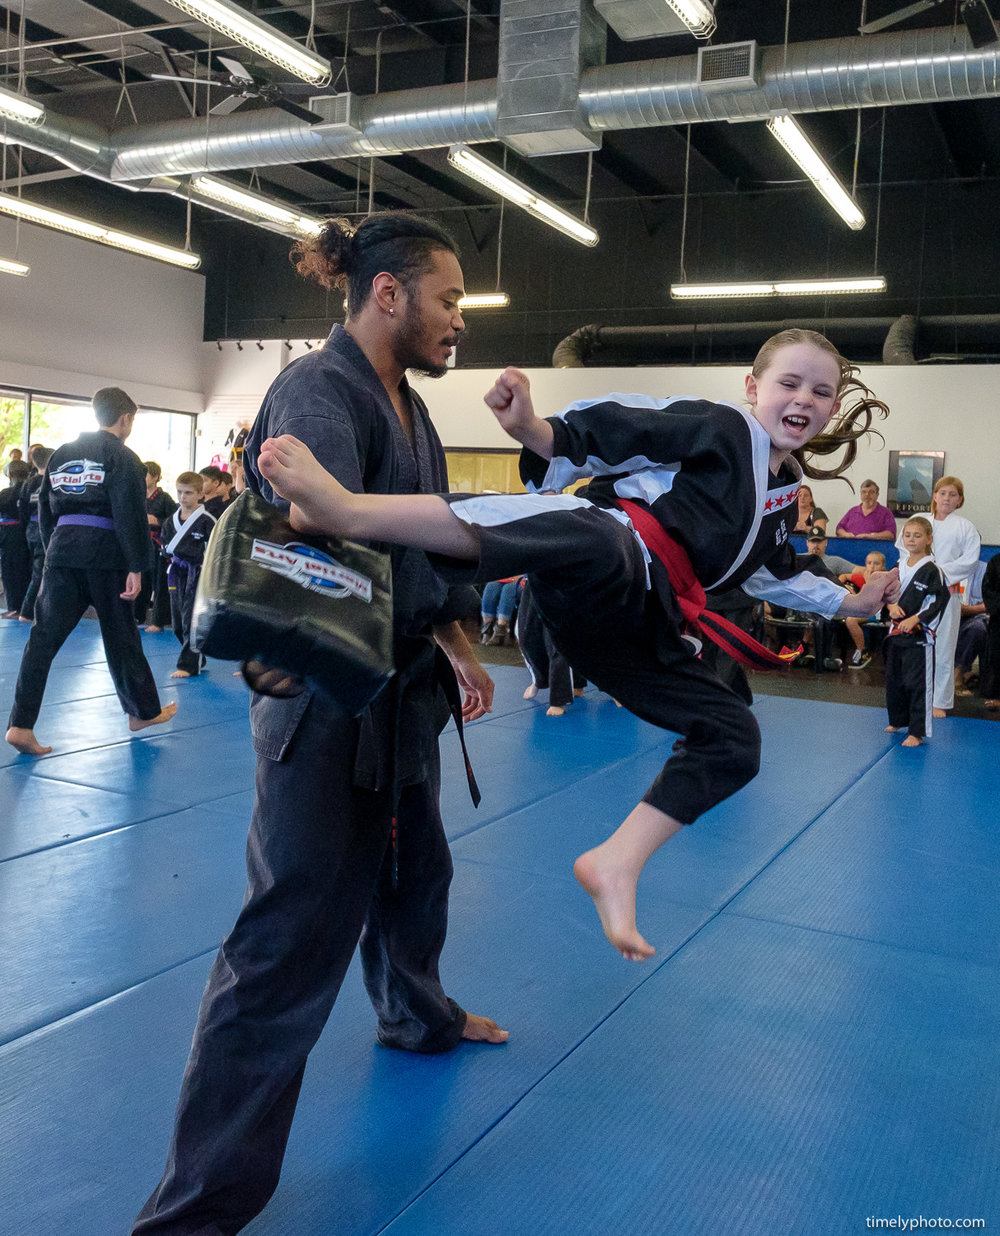 Karate class with child jumping